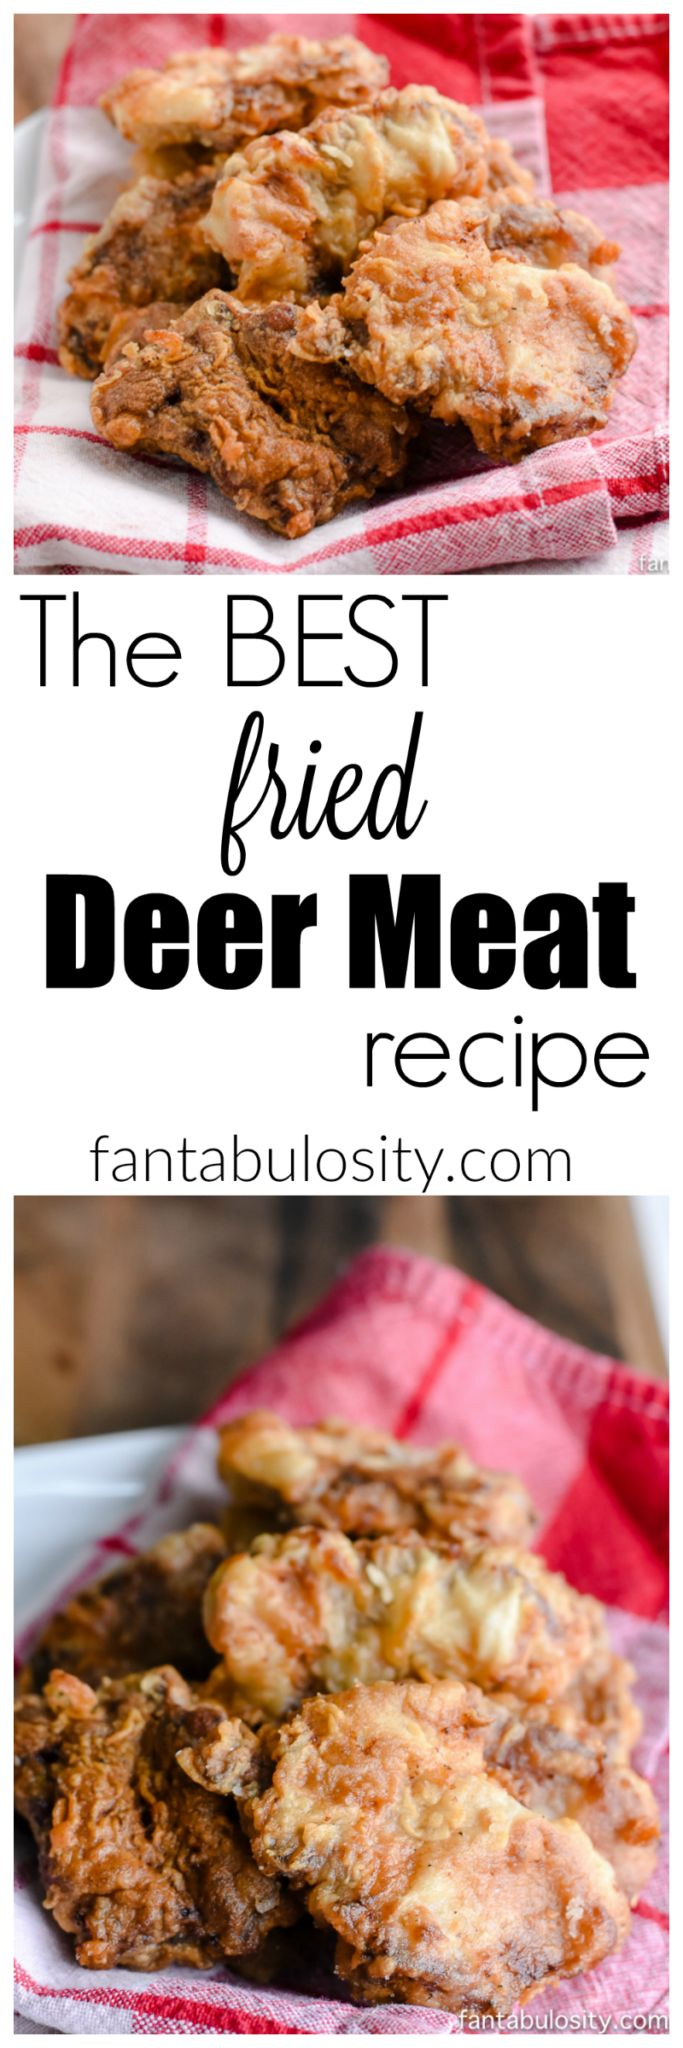 Game to cook - Fried Deer Meat